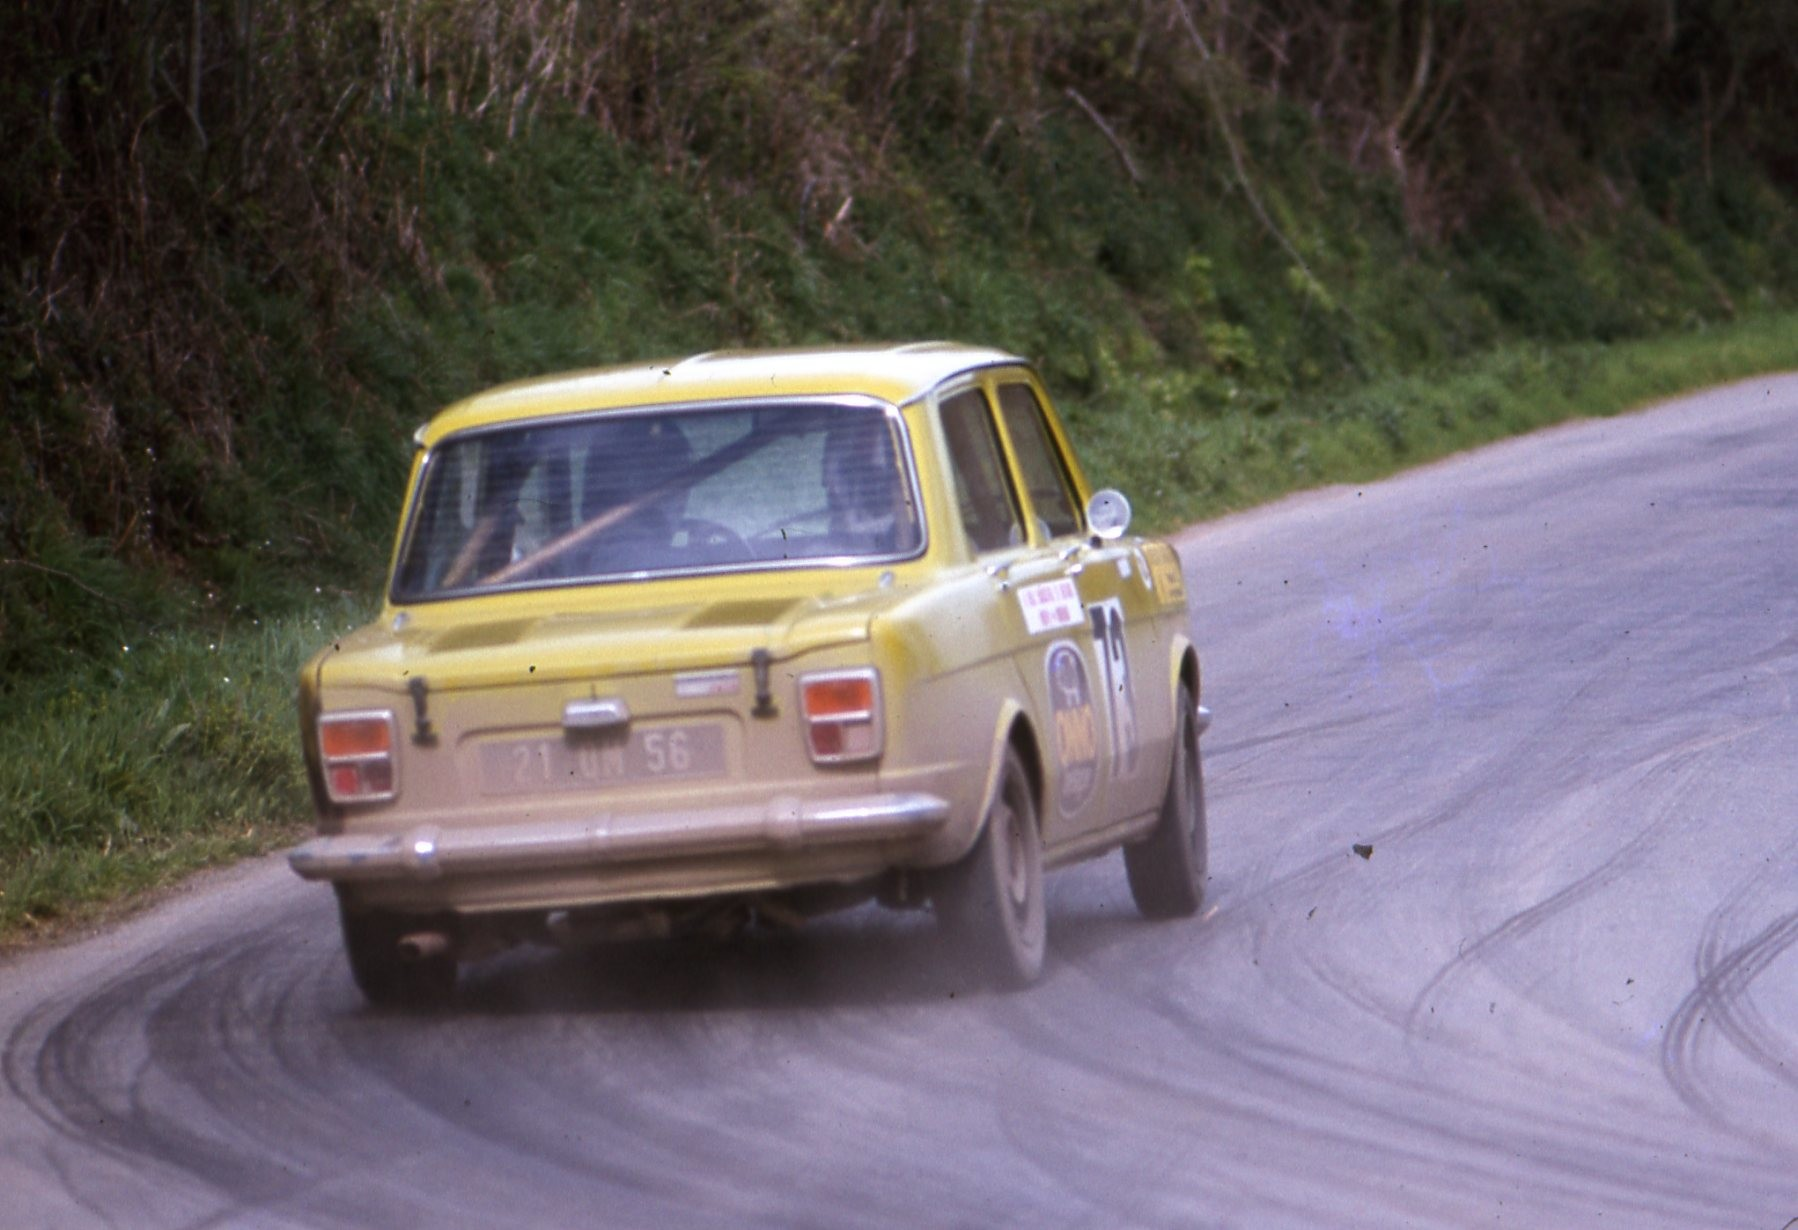 1978 SIMCA 1000 R2 CATTEAUX ARMOR